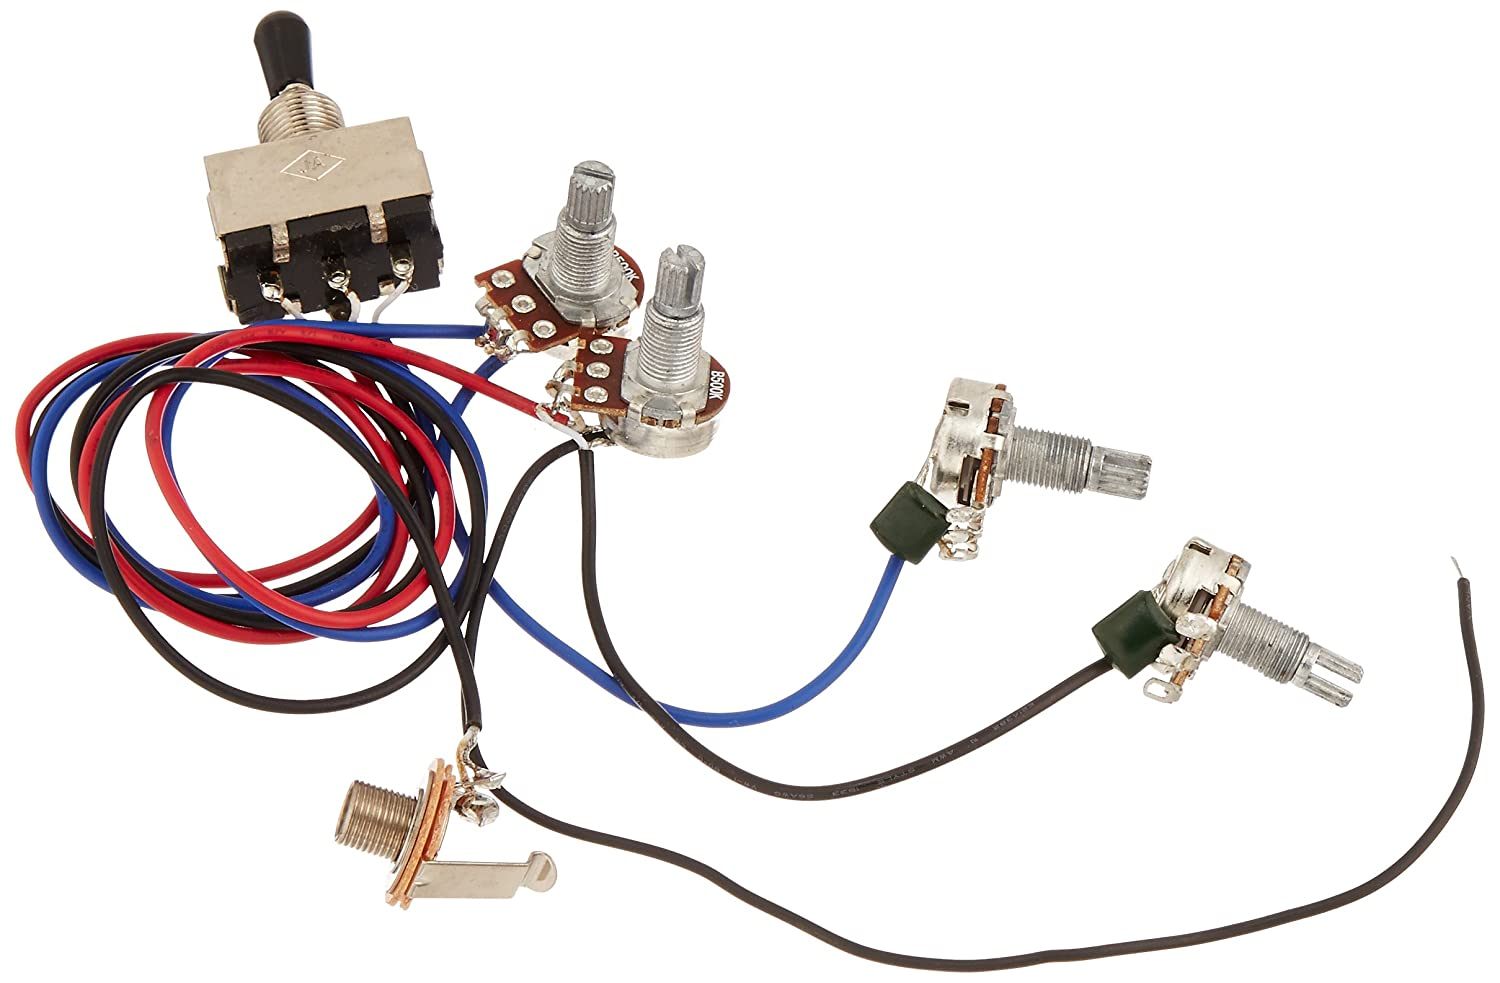 81LsyHV0HJL._SL1500_ amazon com kmise wiring harness prewired 2v2t 3way toggle switch gibson guitar wiring at readyjetset.co